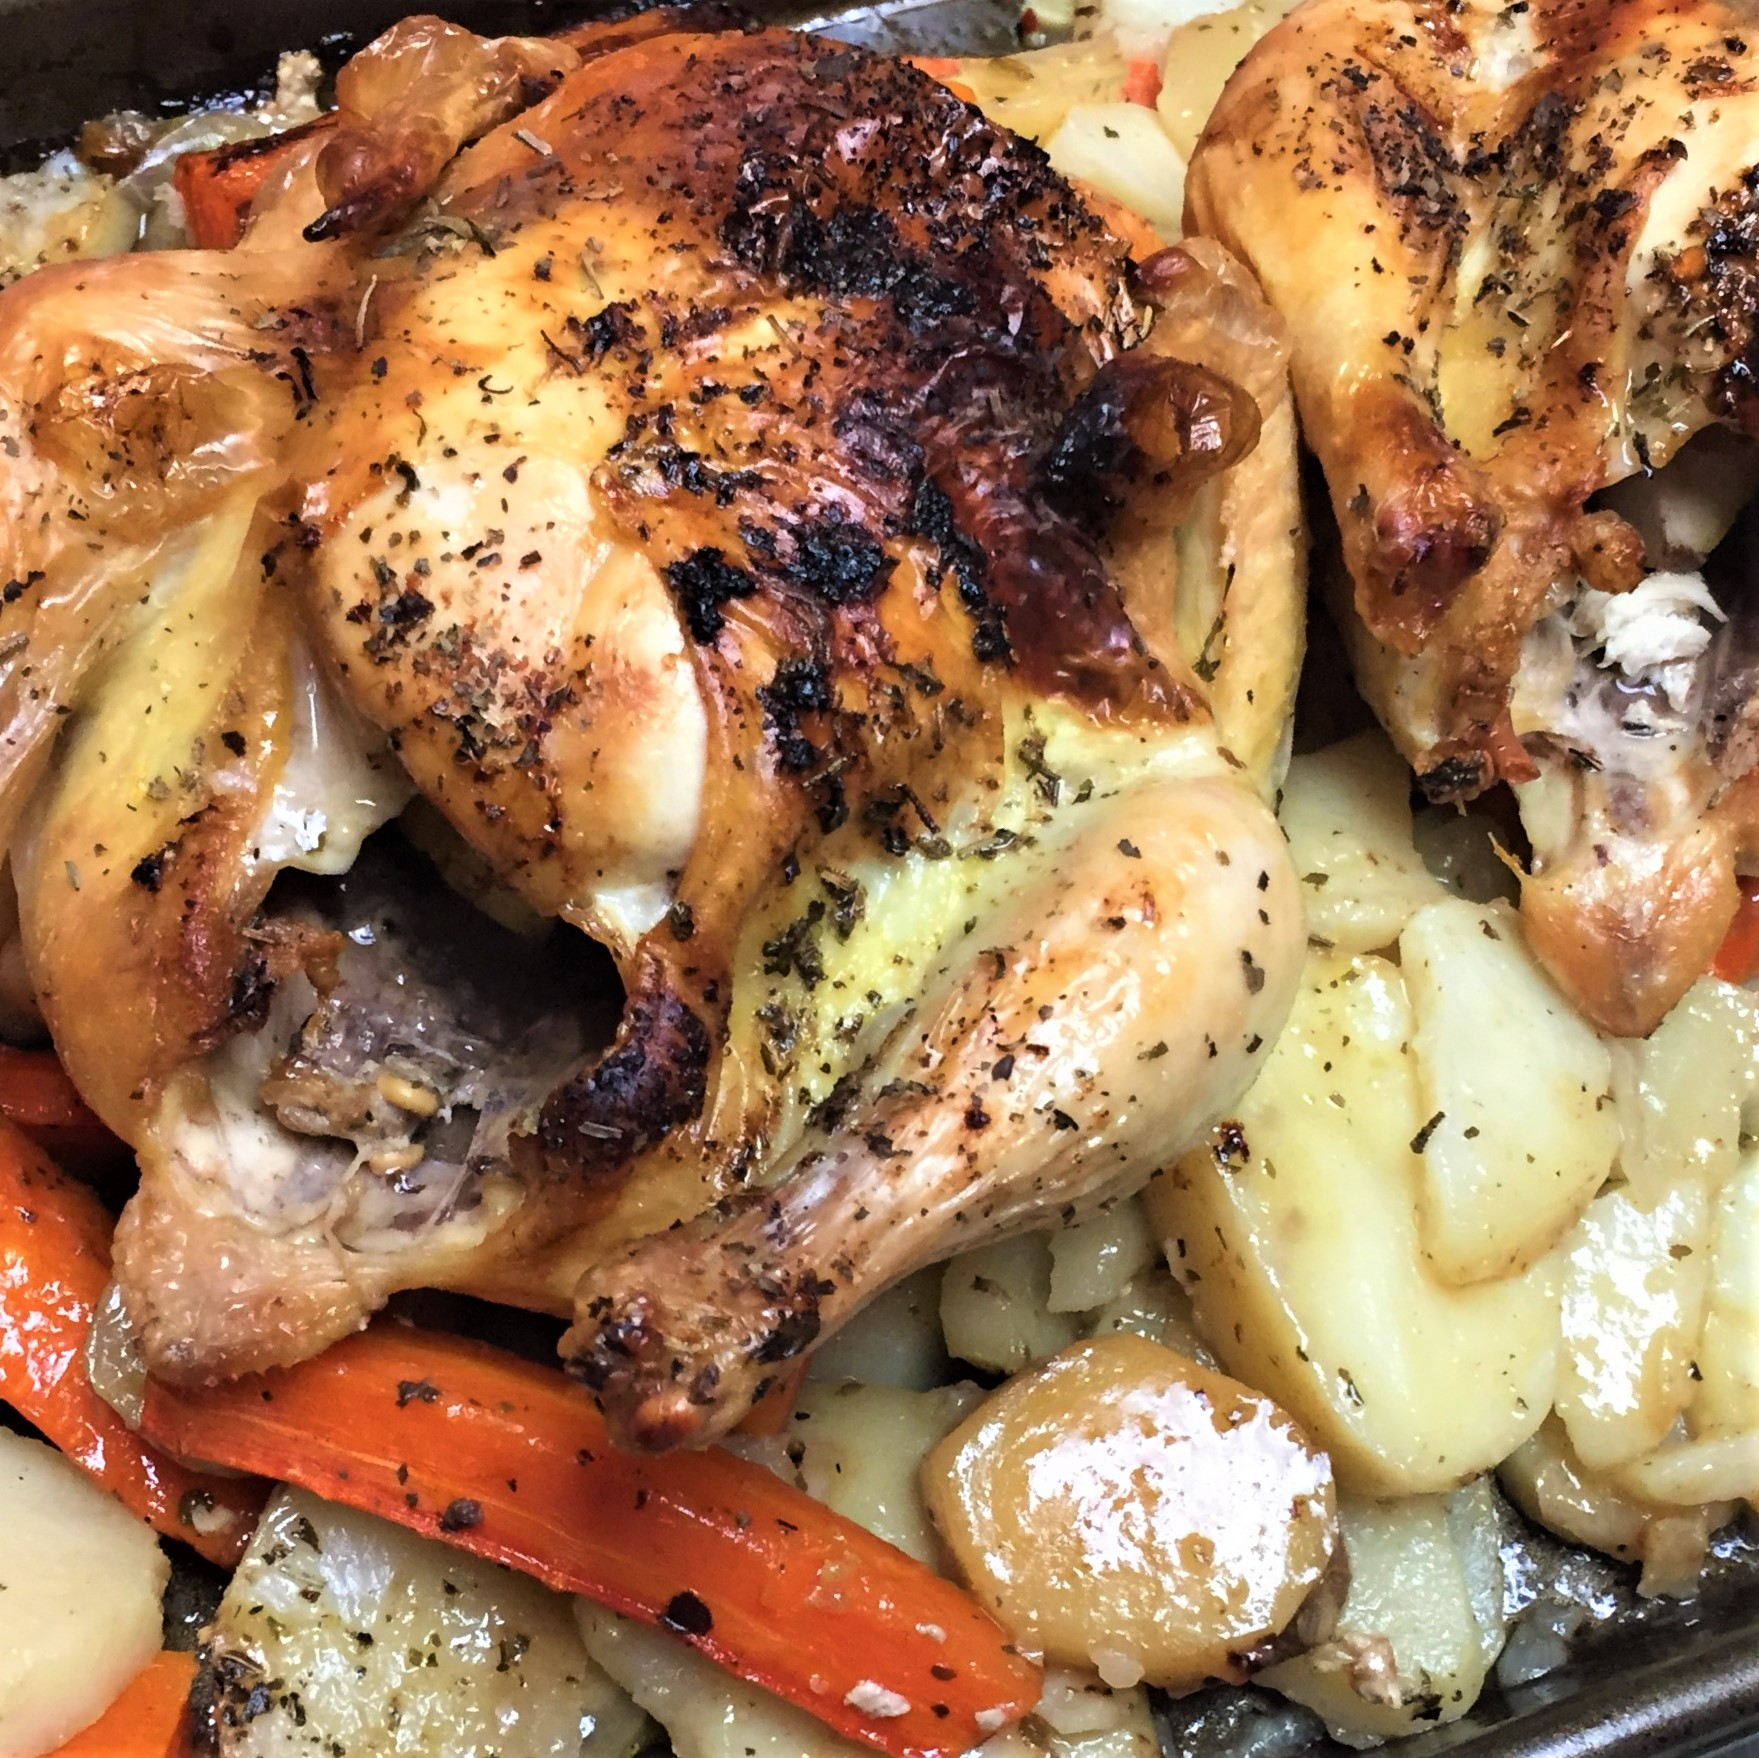 two cornish hens cooked in a sheet pan with vegetables